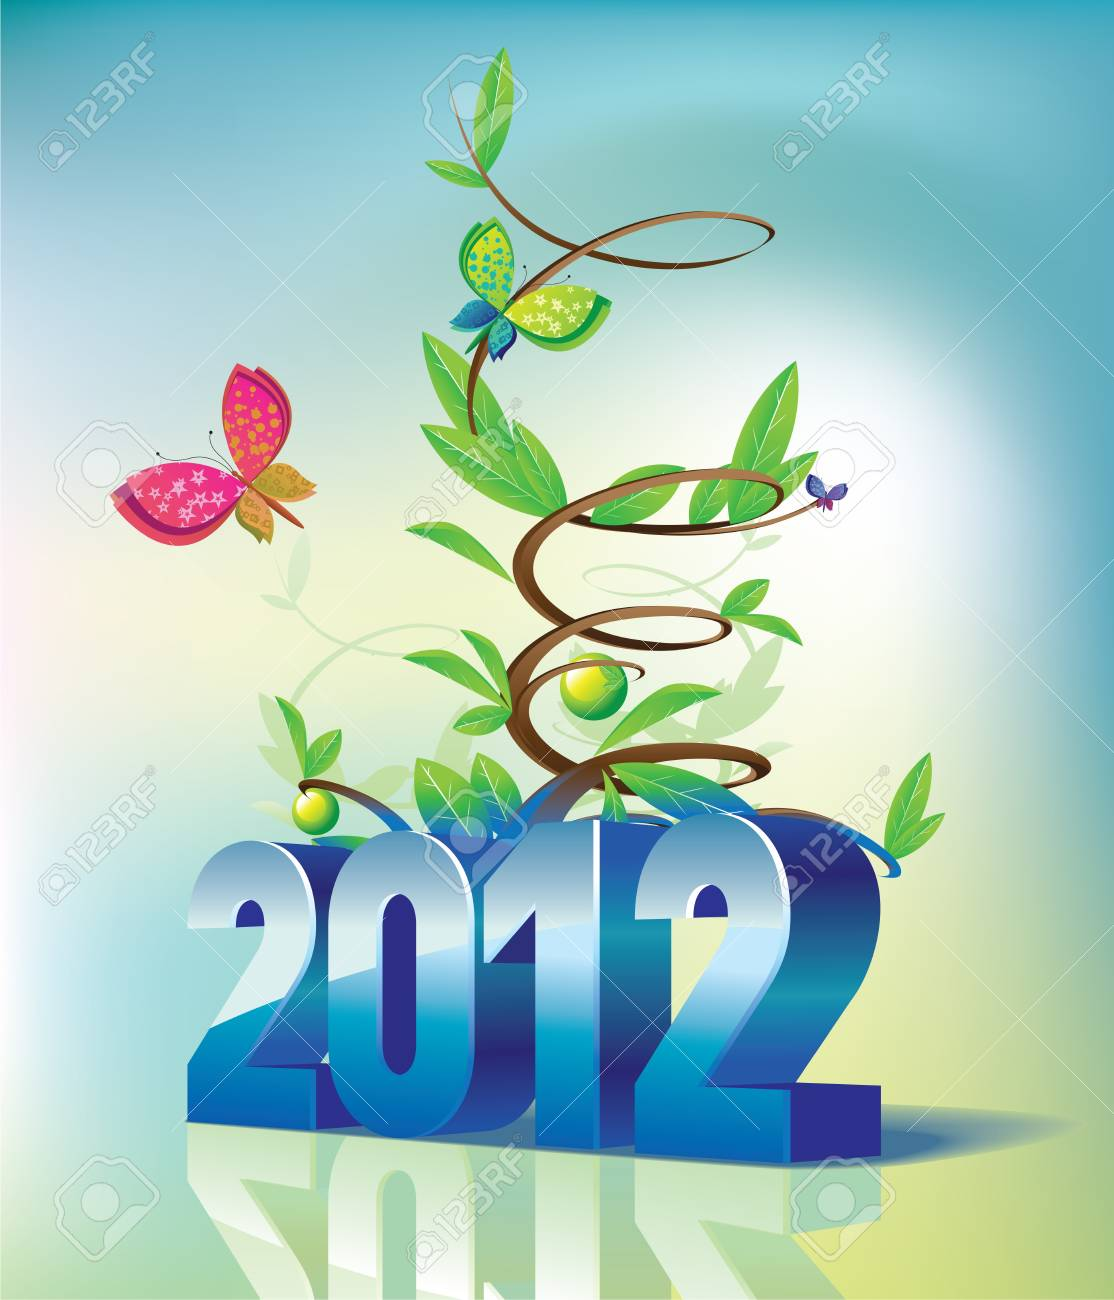 2012 the calendar and tree Stock Vector - 11485452